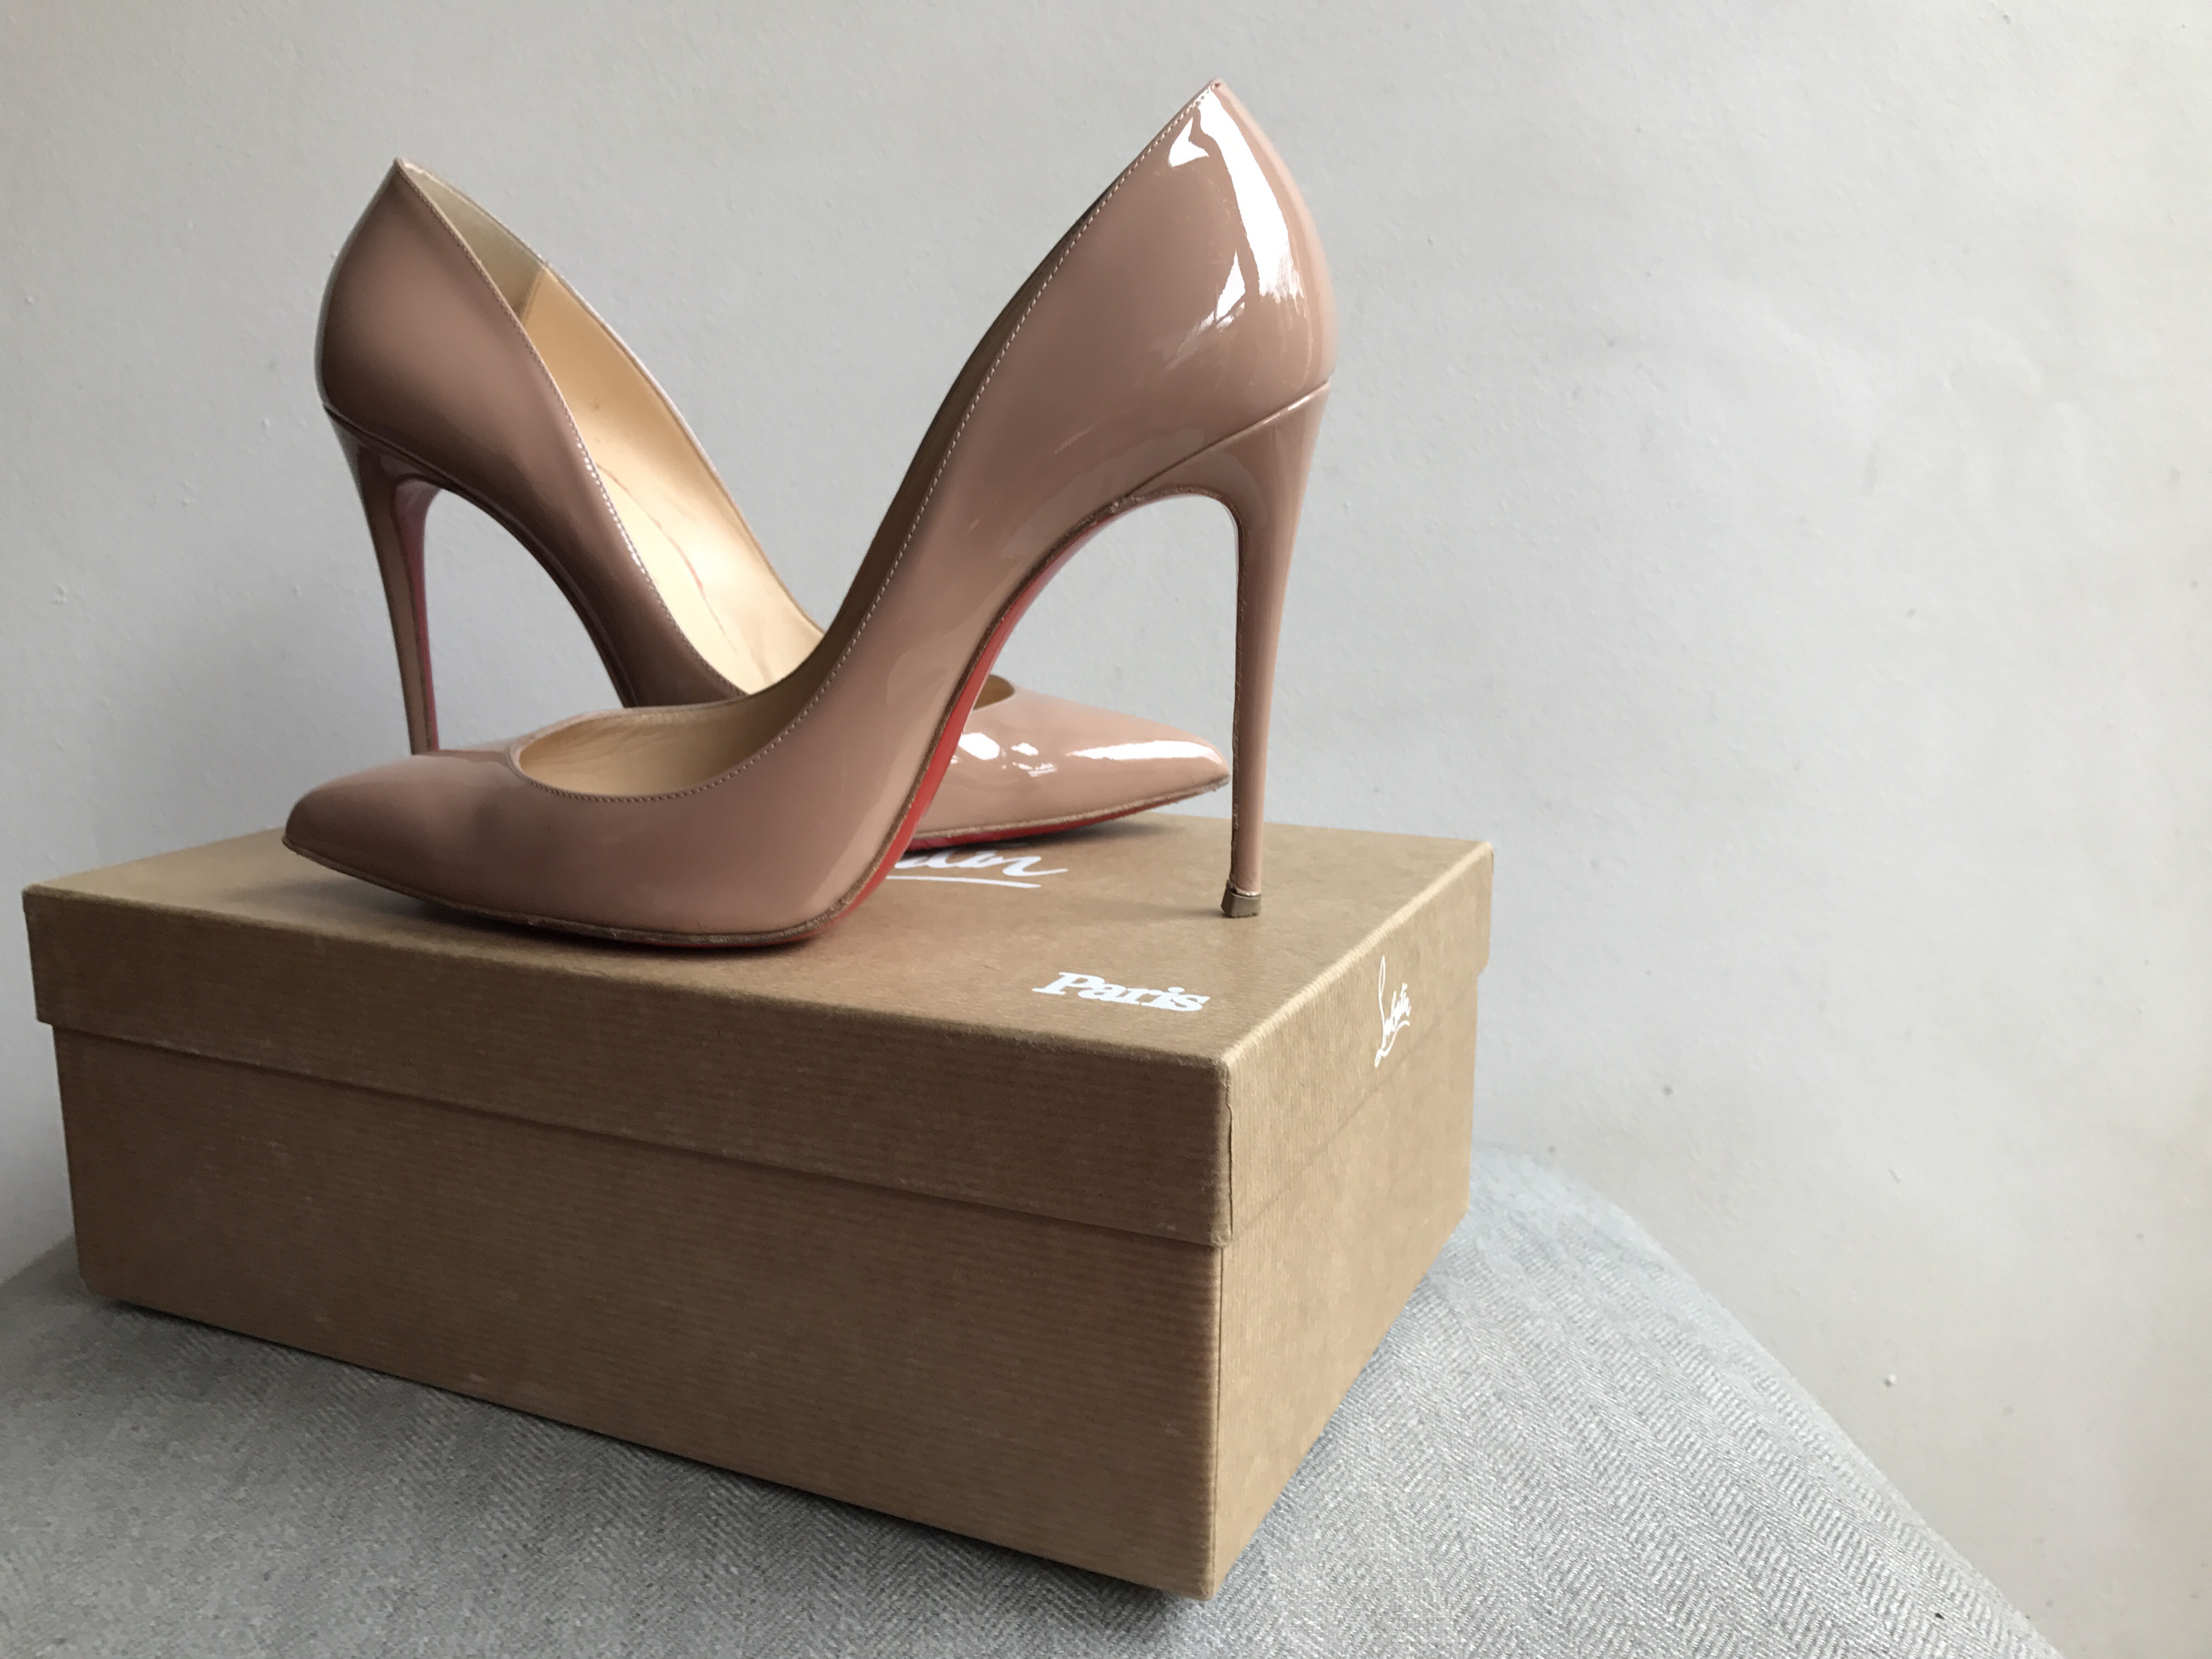 85f39c97f2cb0 When I decided to buy my first pair of Louboutins there was no question of  what I would get